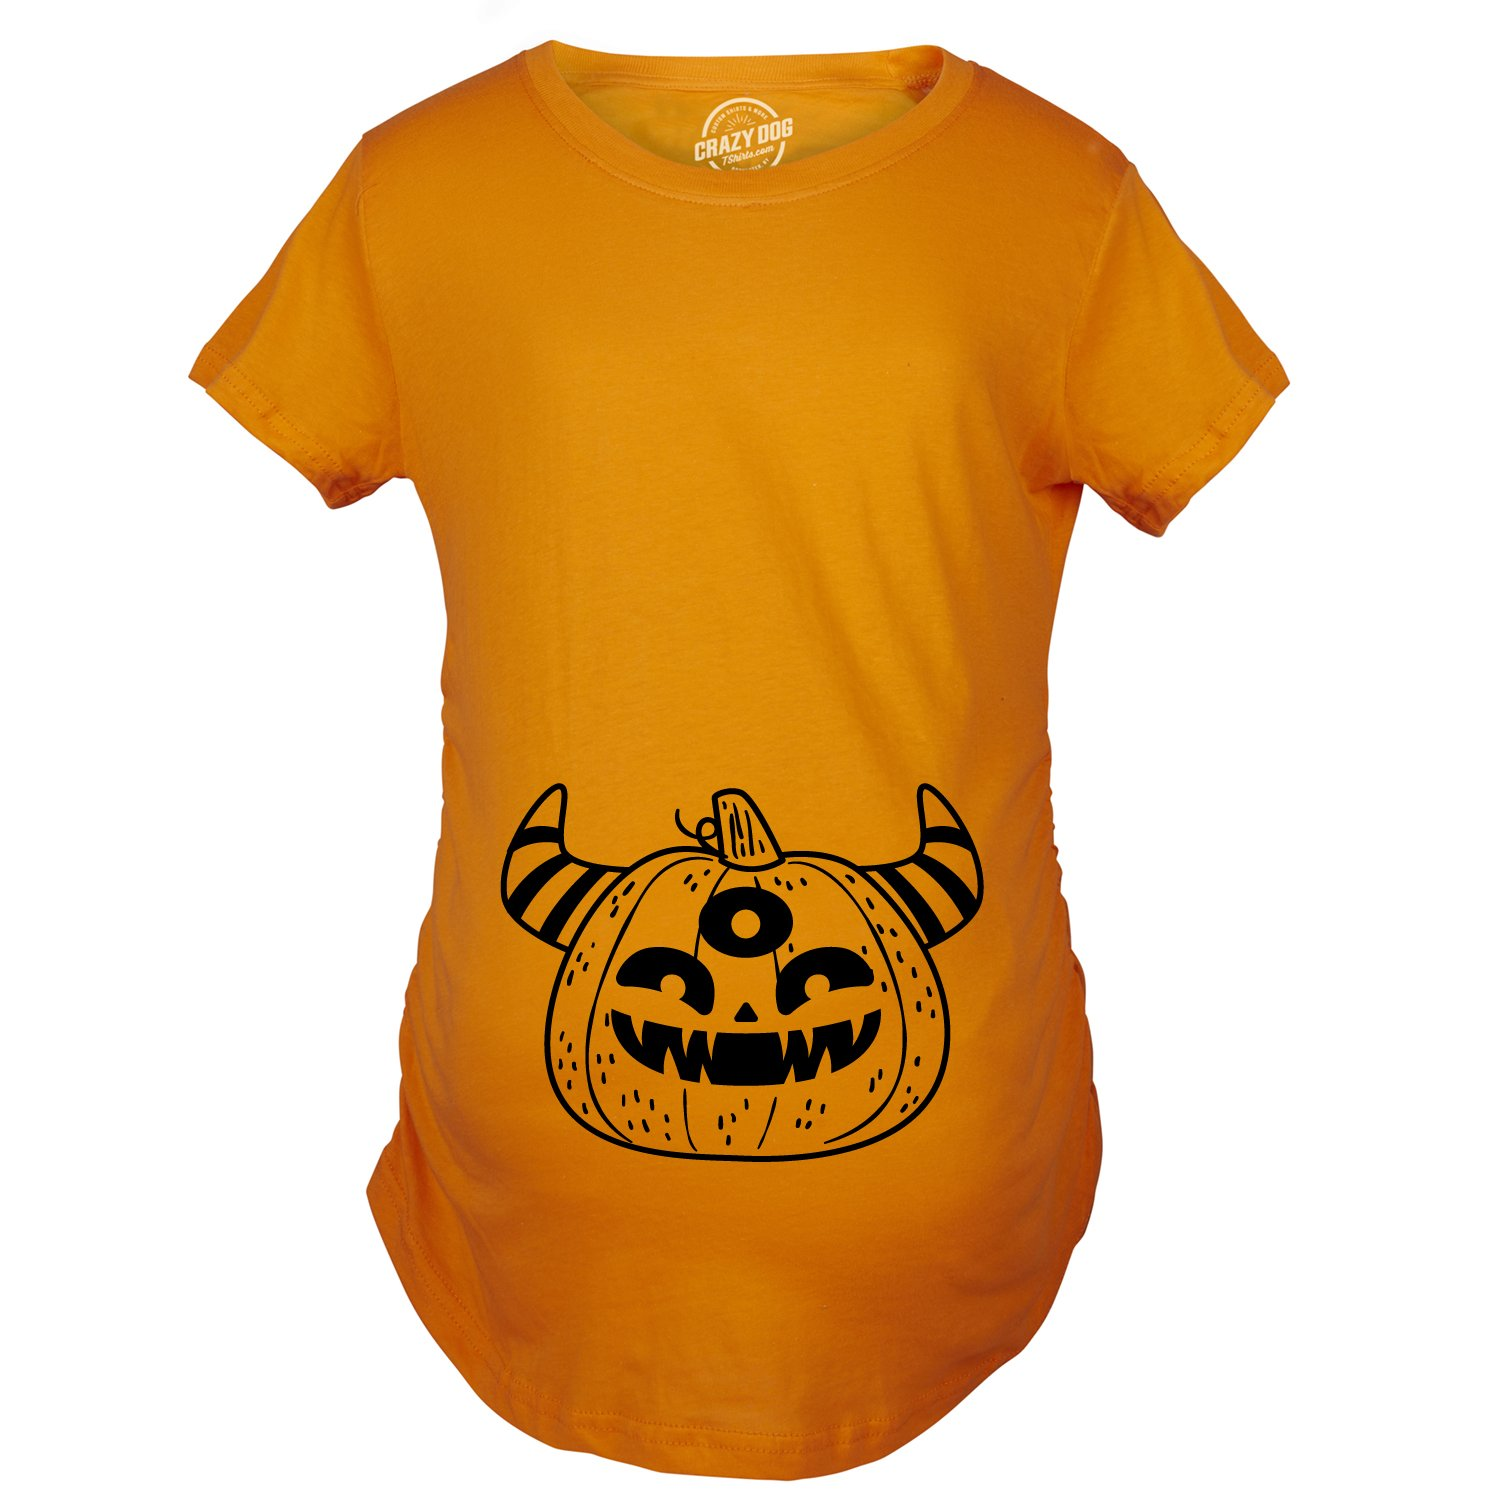 Maternity Monster Pumpkin Pregnancy Shirt Funny Halloween Tee for Baby Bump -XL